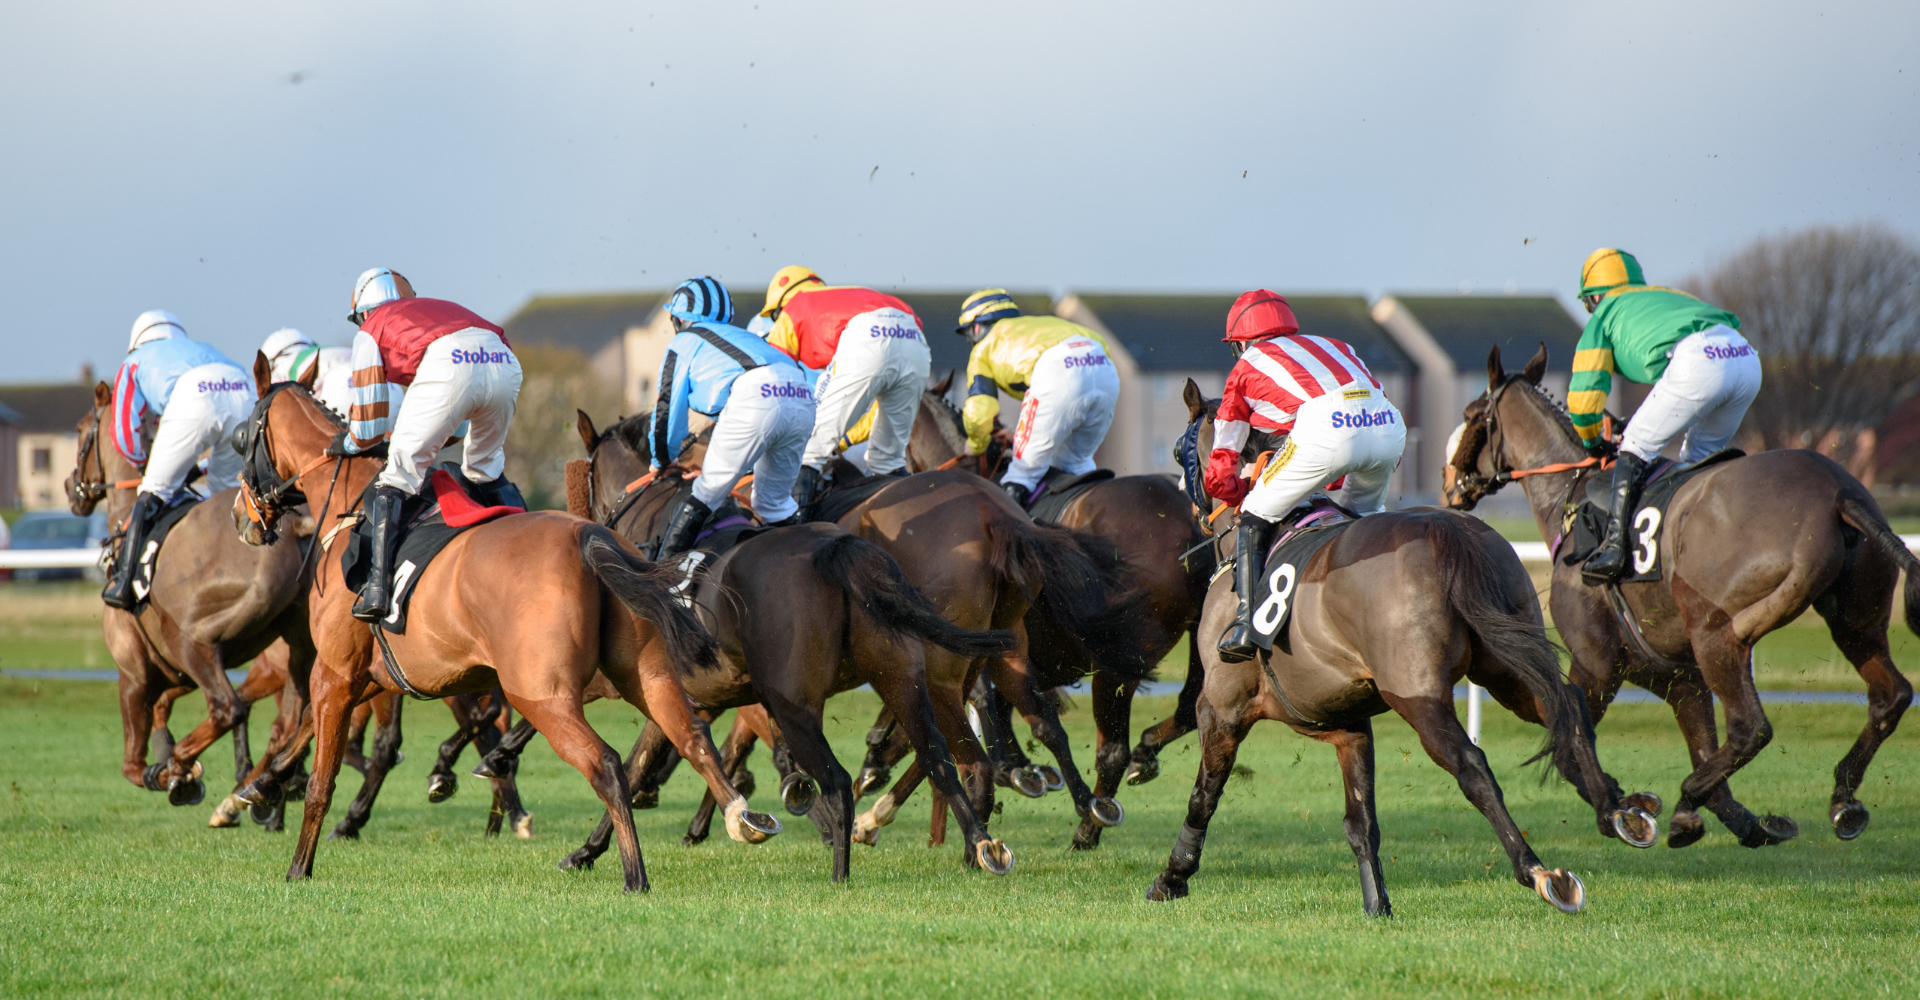 Musselburgh Racecourse has been deemed to be safe for racing and in excellent condition